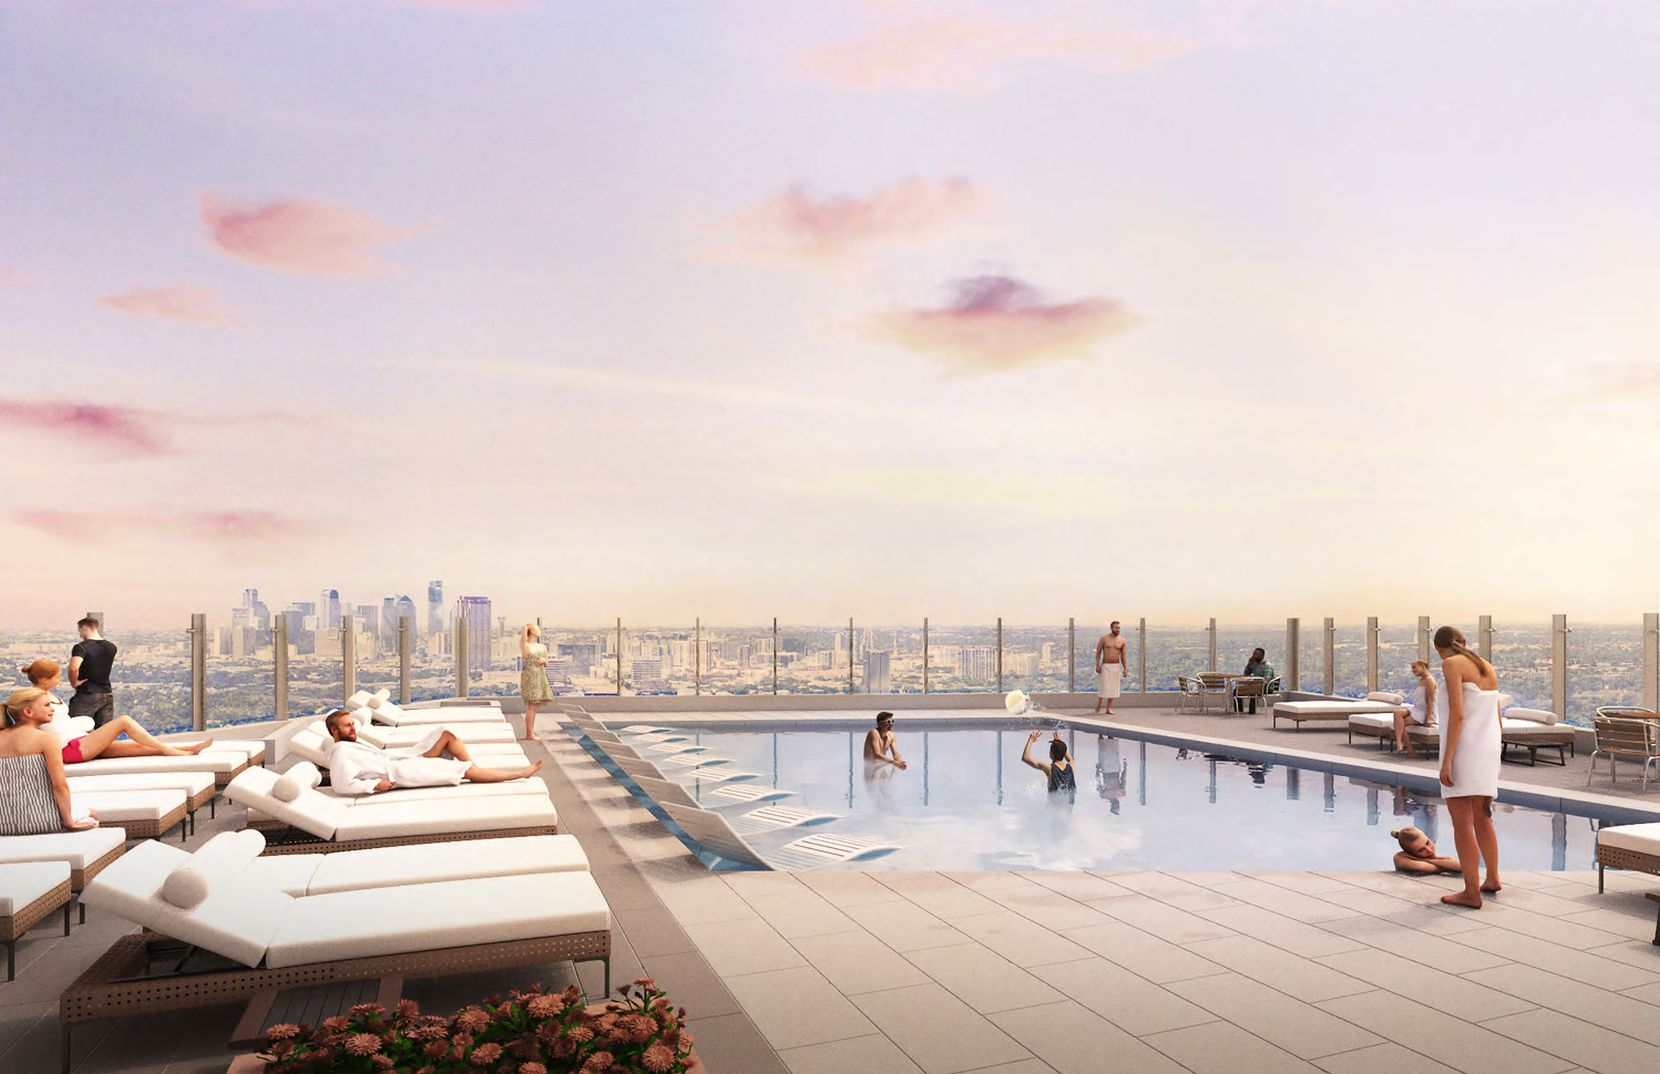 The apartment high-rise will have a rooftop pool.